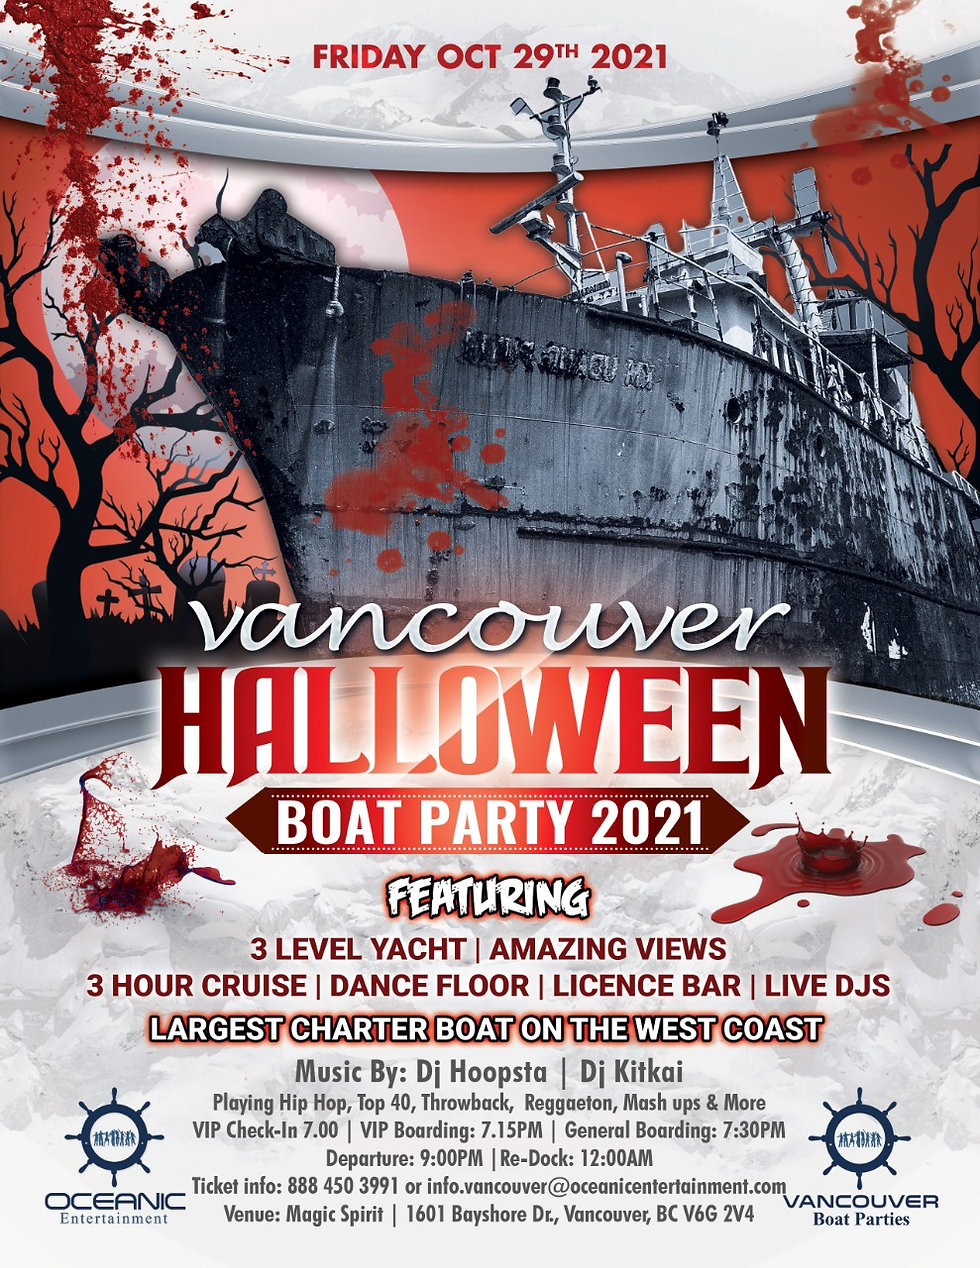 Vancouver halloween Boat yacht PArty 2021.jpeg